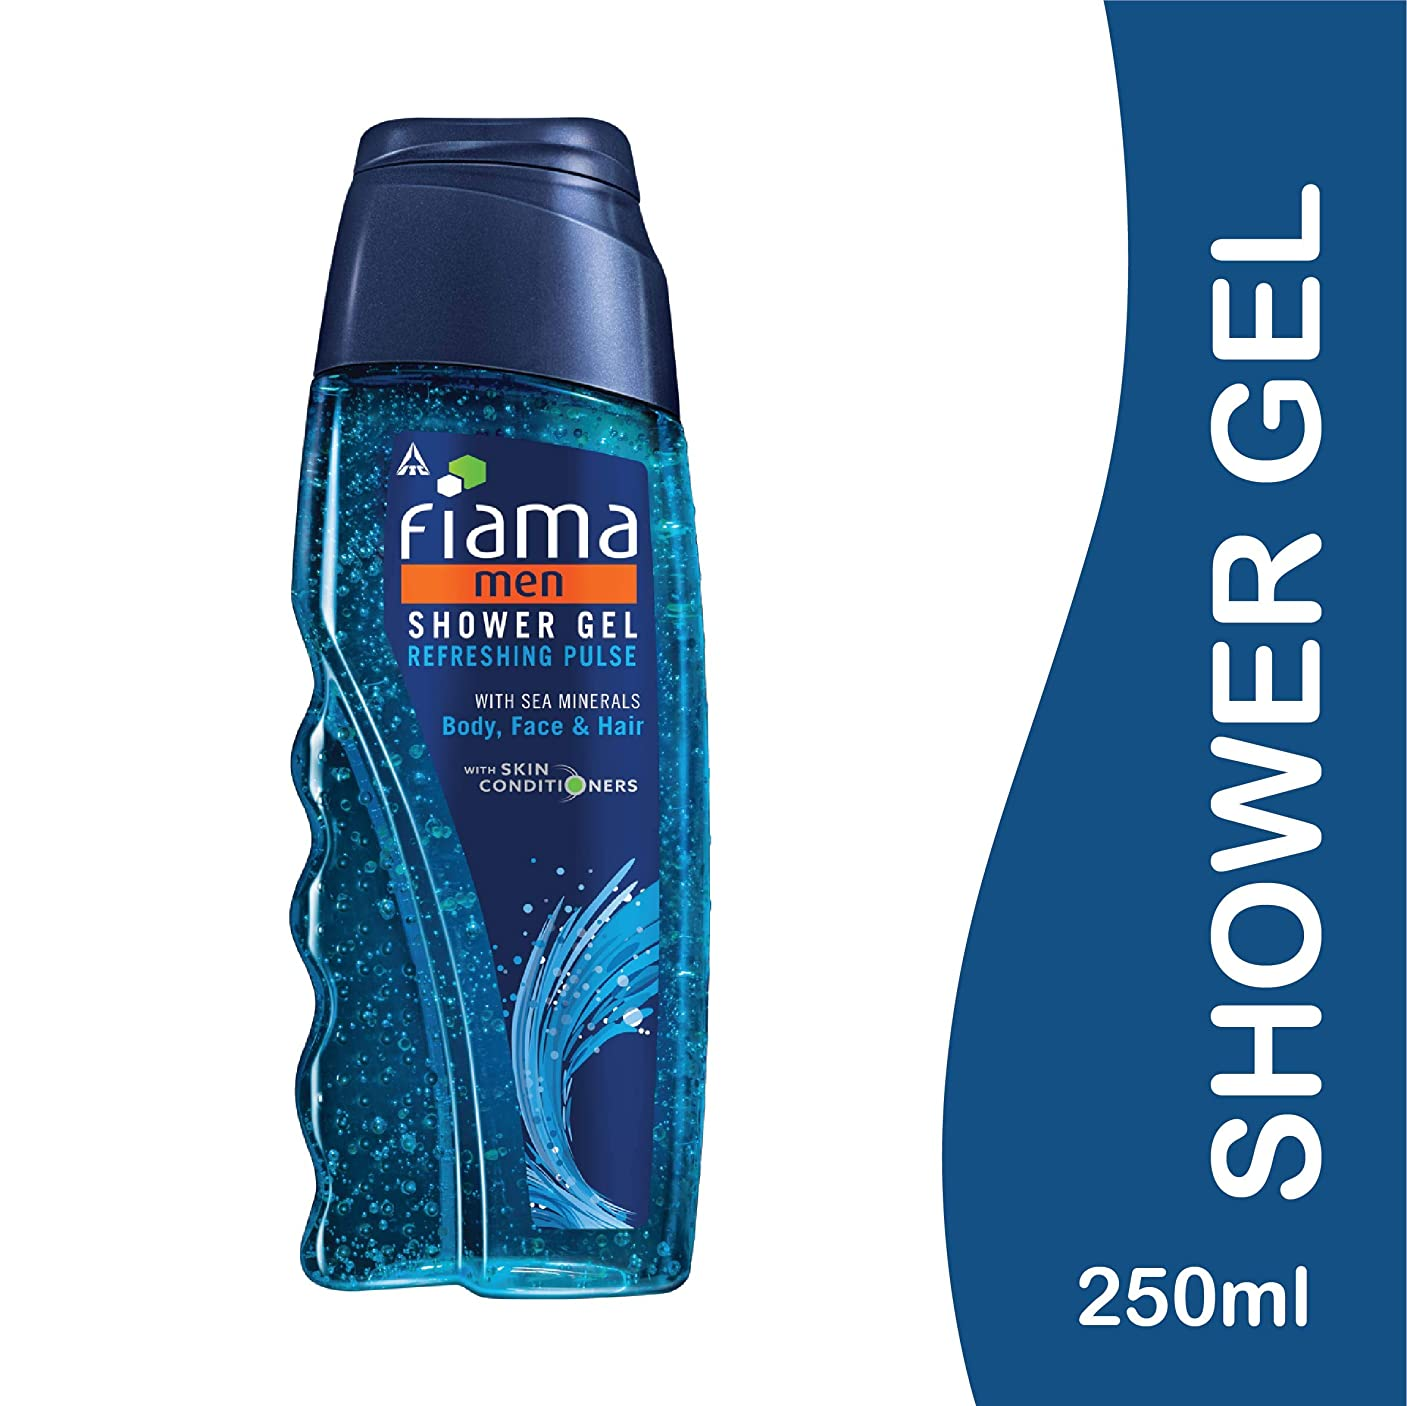 積分連隊話をするFiama Men Refreshing Pulse Shower Gel, 250ml